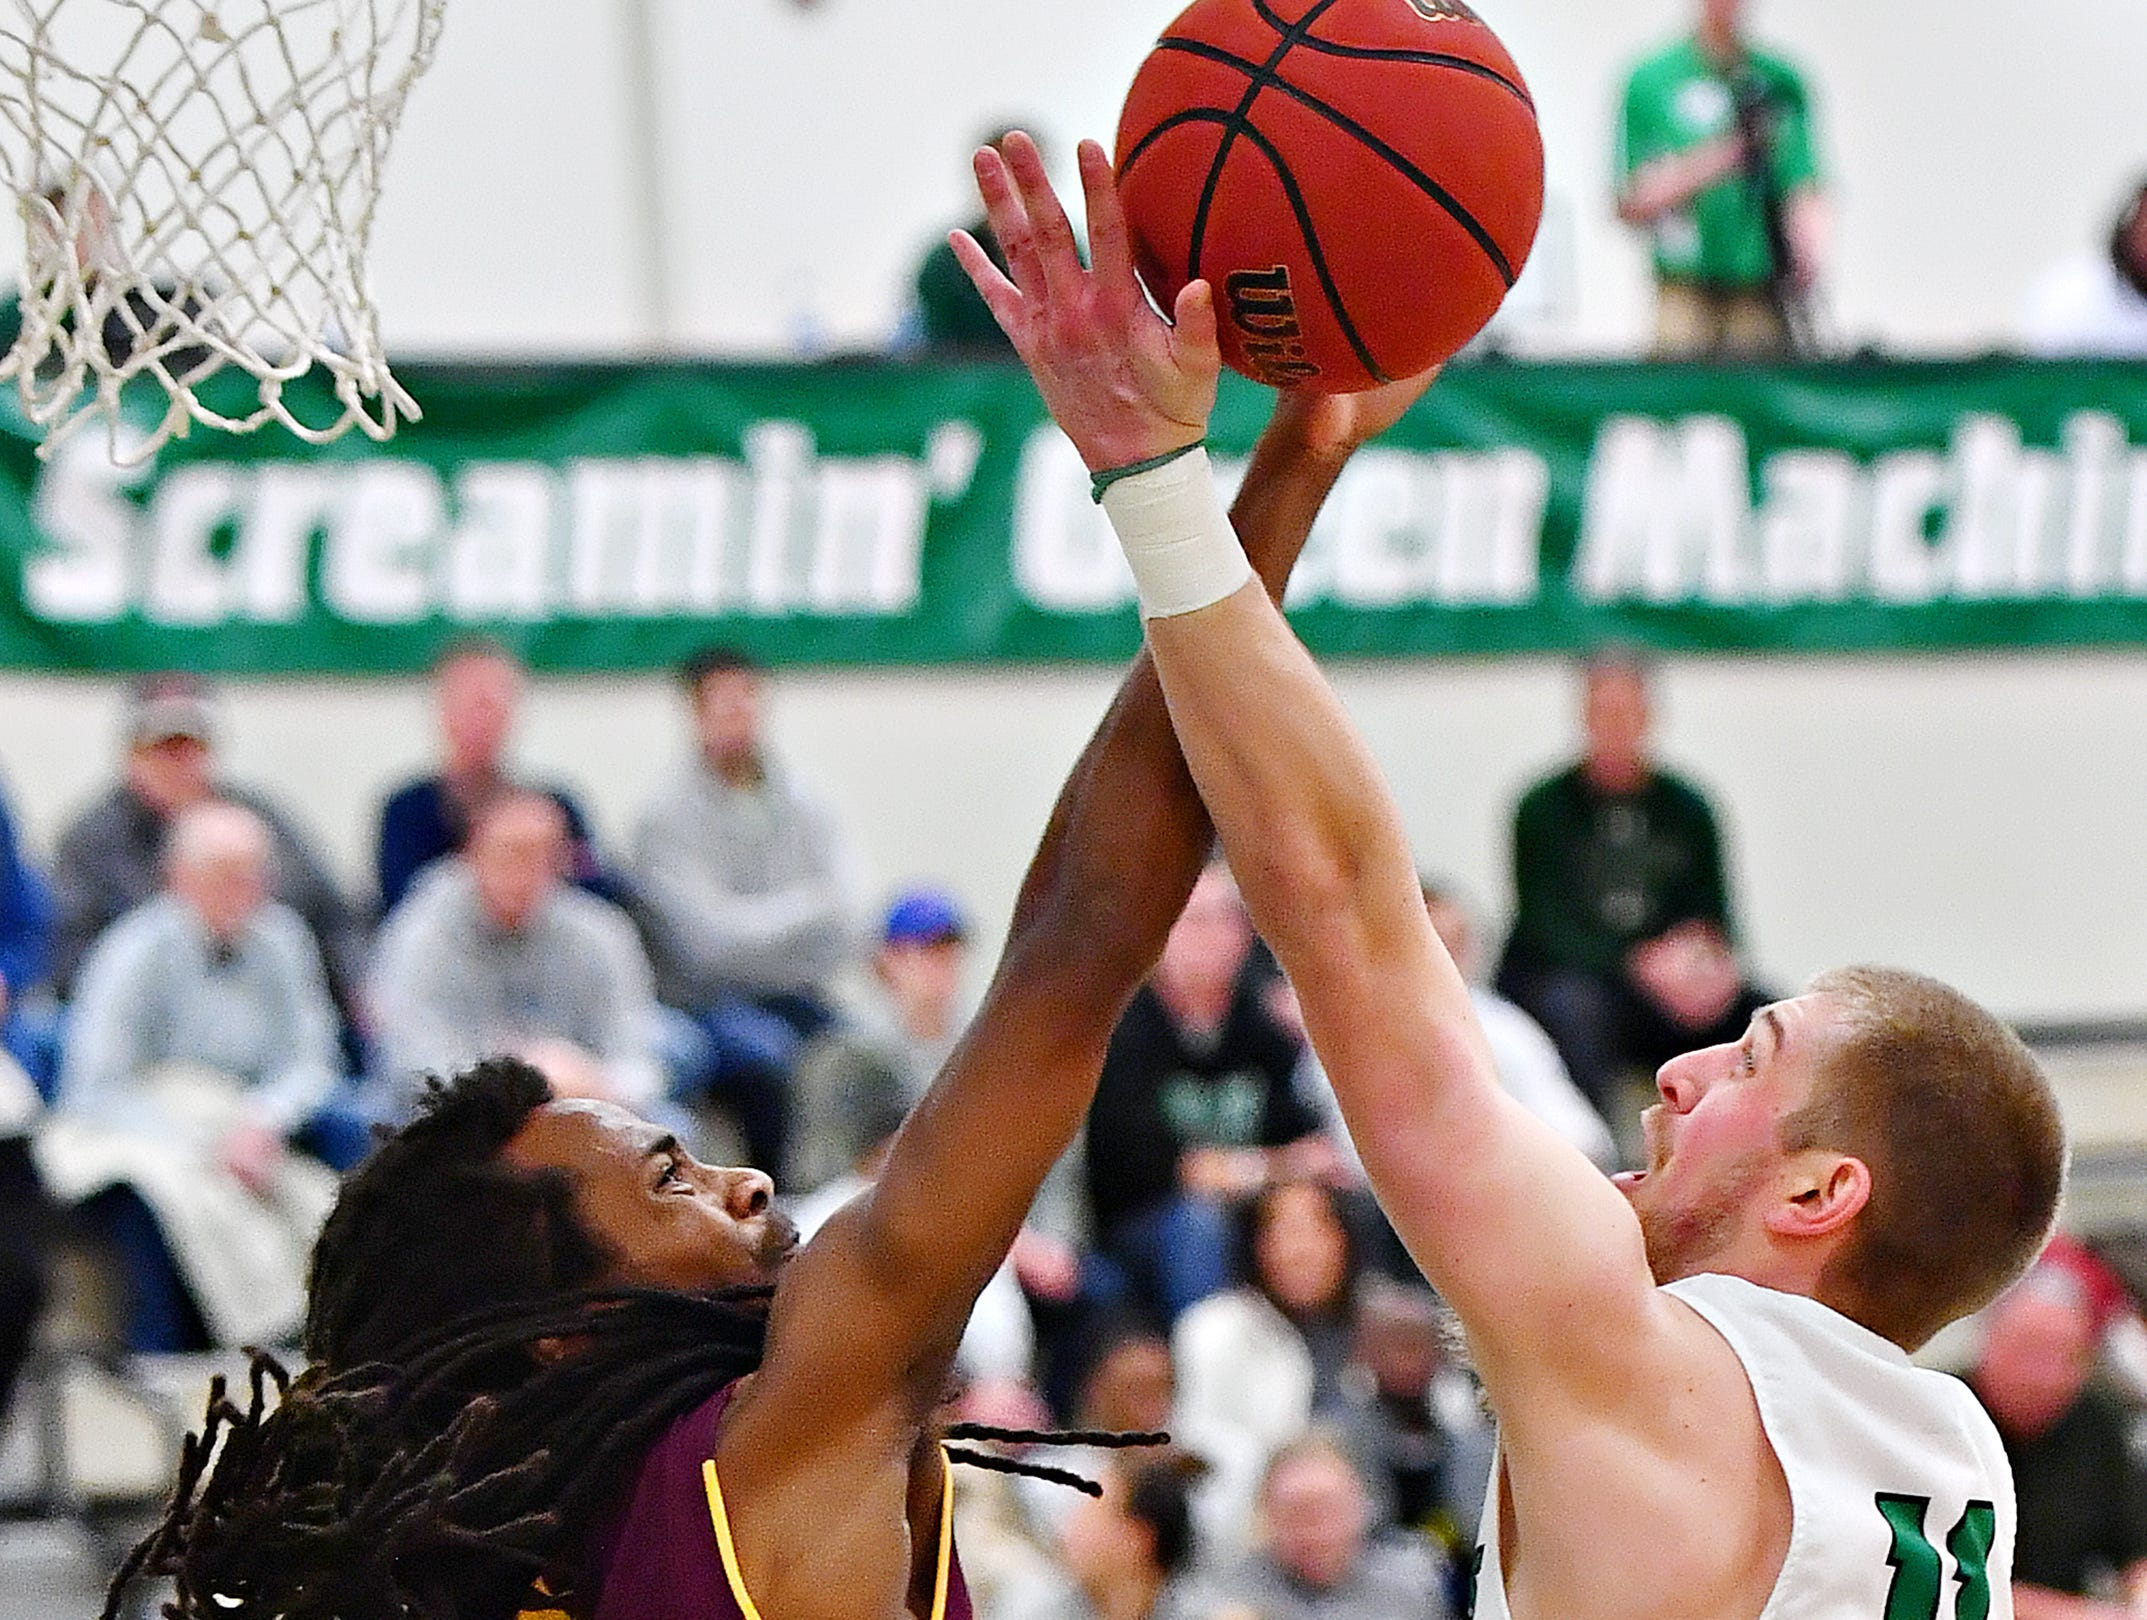 York College's Mike Frauenheim, right, takes the ball to the basket while Salisbury's Marquis Roberson defends during men's basketball action at Grumbacher Sport and Fitness Center at York College of Pennsylvania in Spring Garden Township, Wednesday, Feb. 6, 2019. Dawn J. Sagert photo